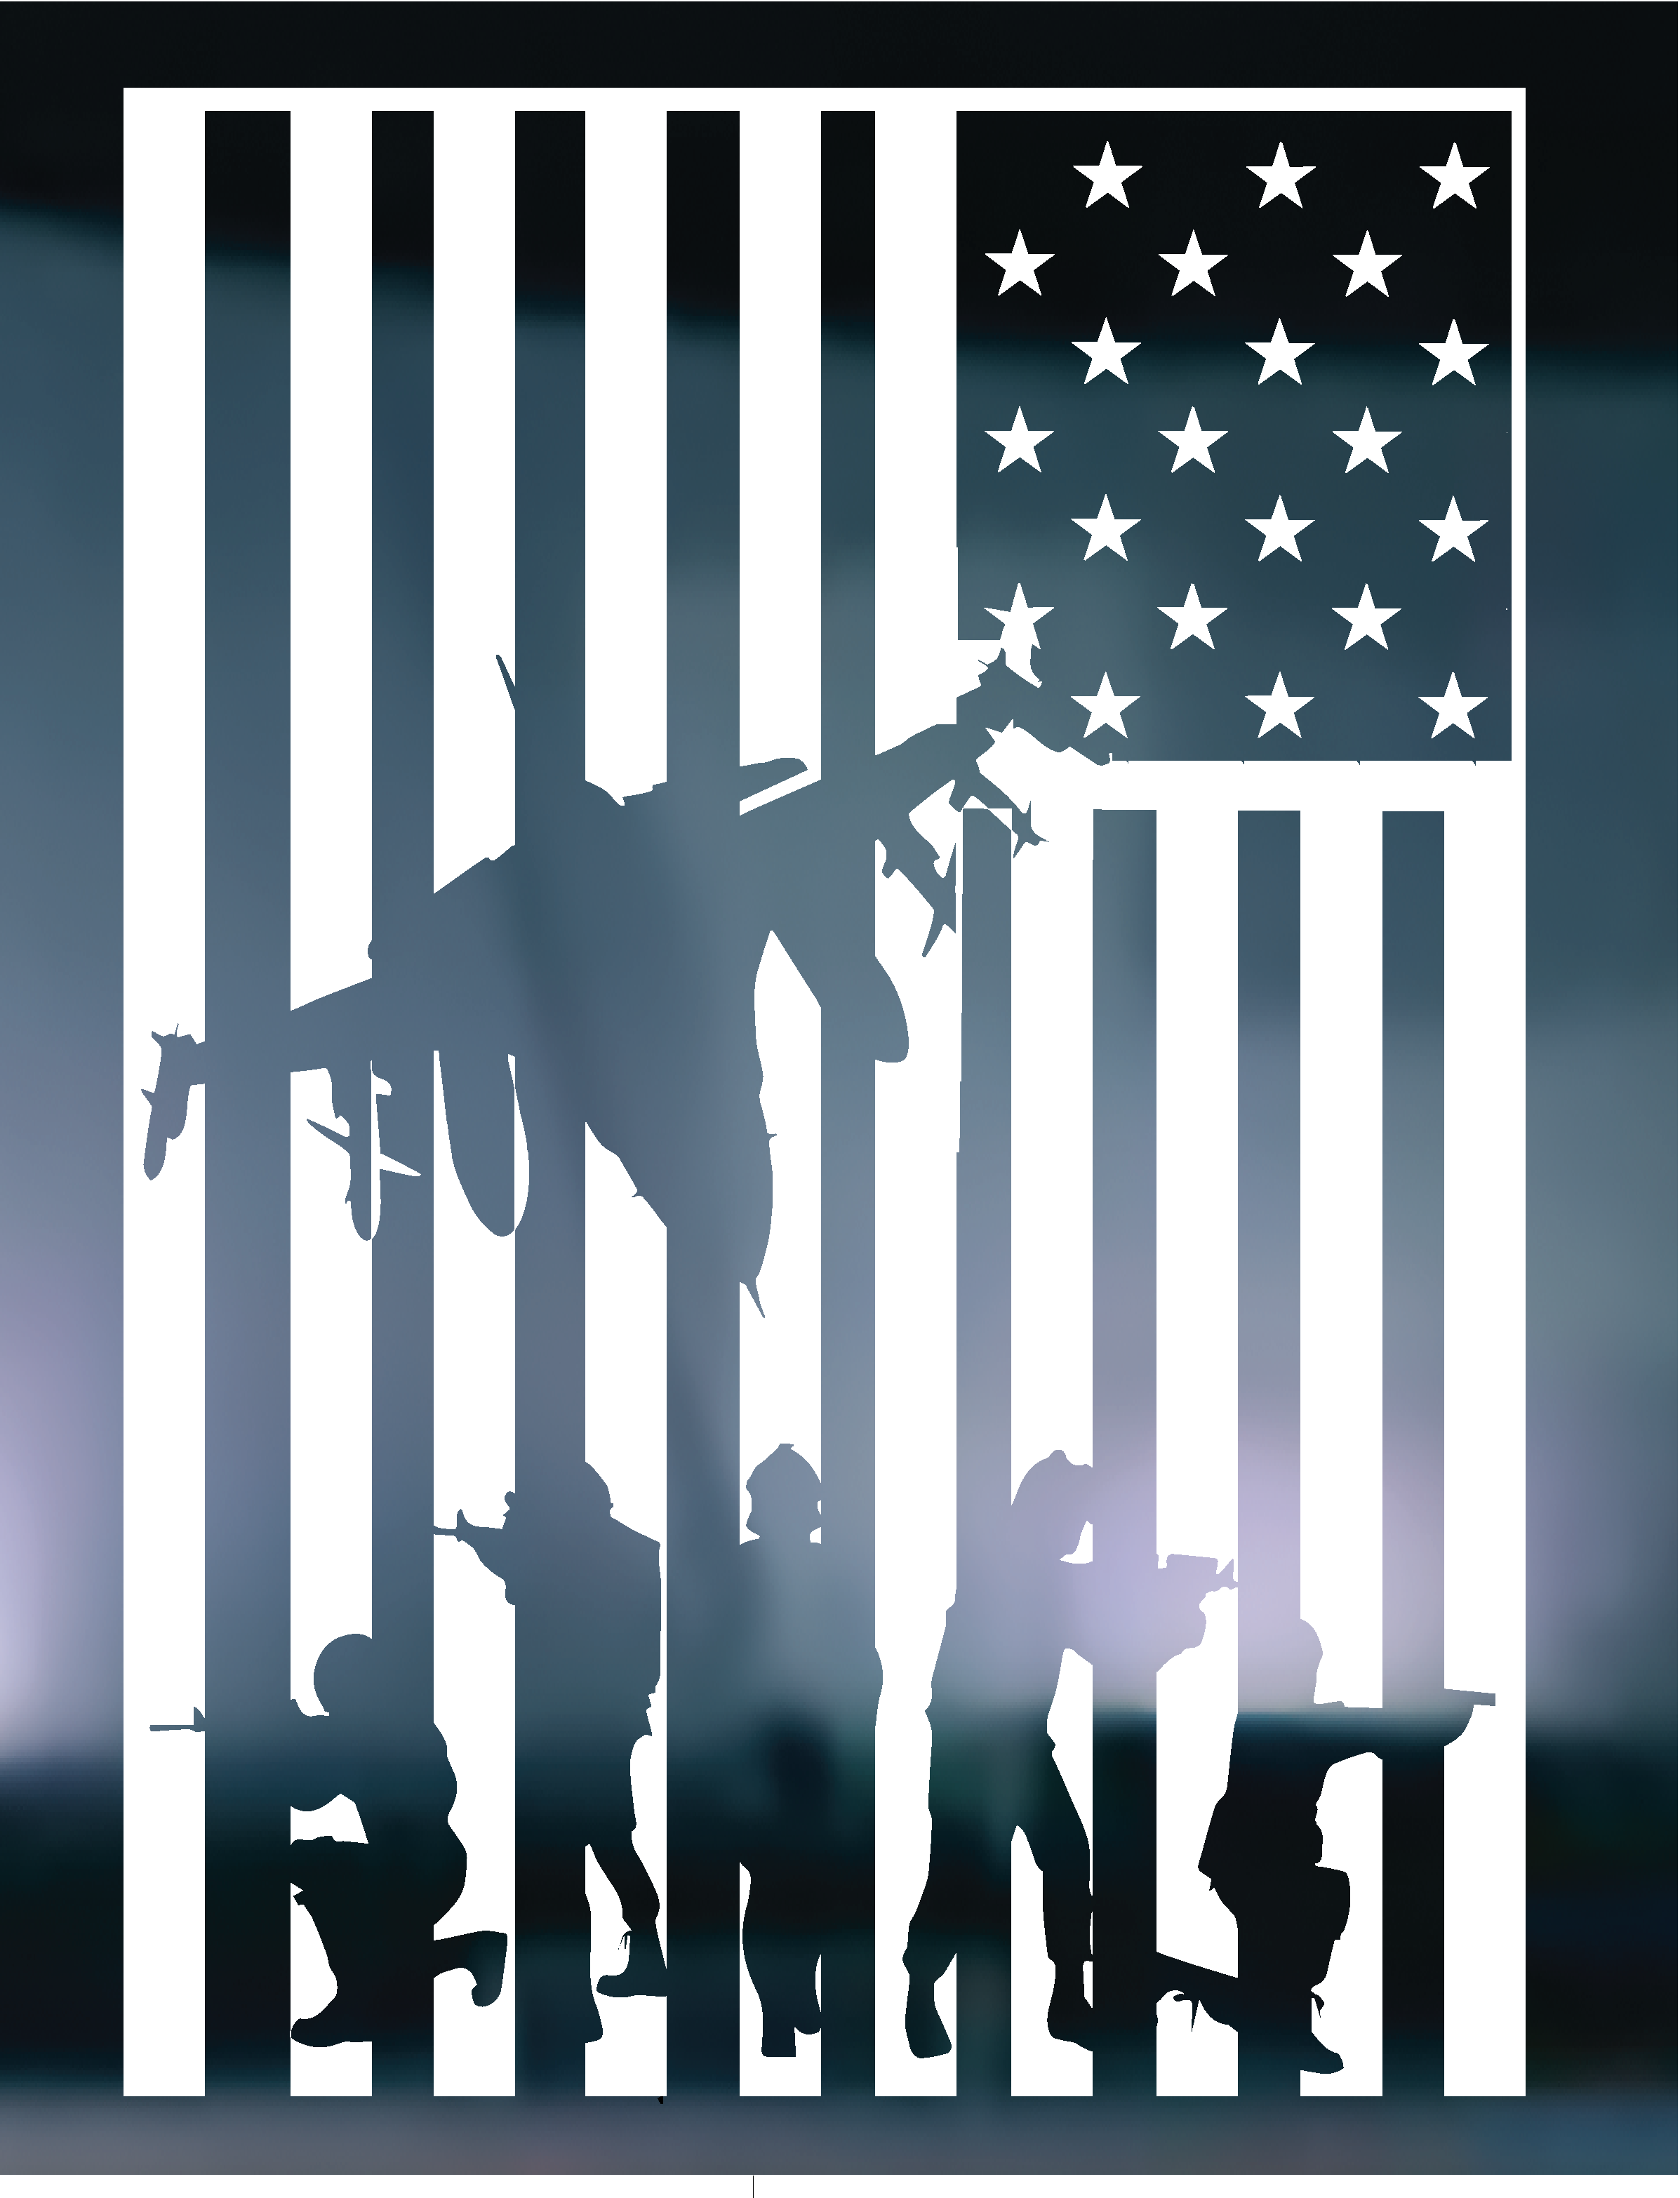 American Flag Soldiers Vinyl Graphic Decal.